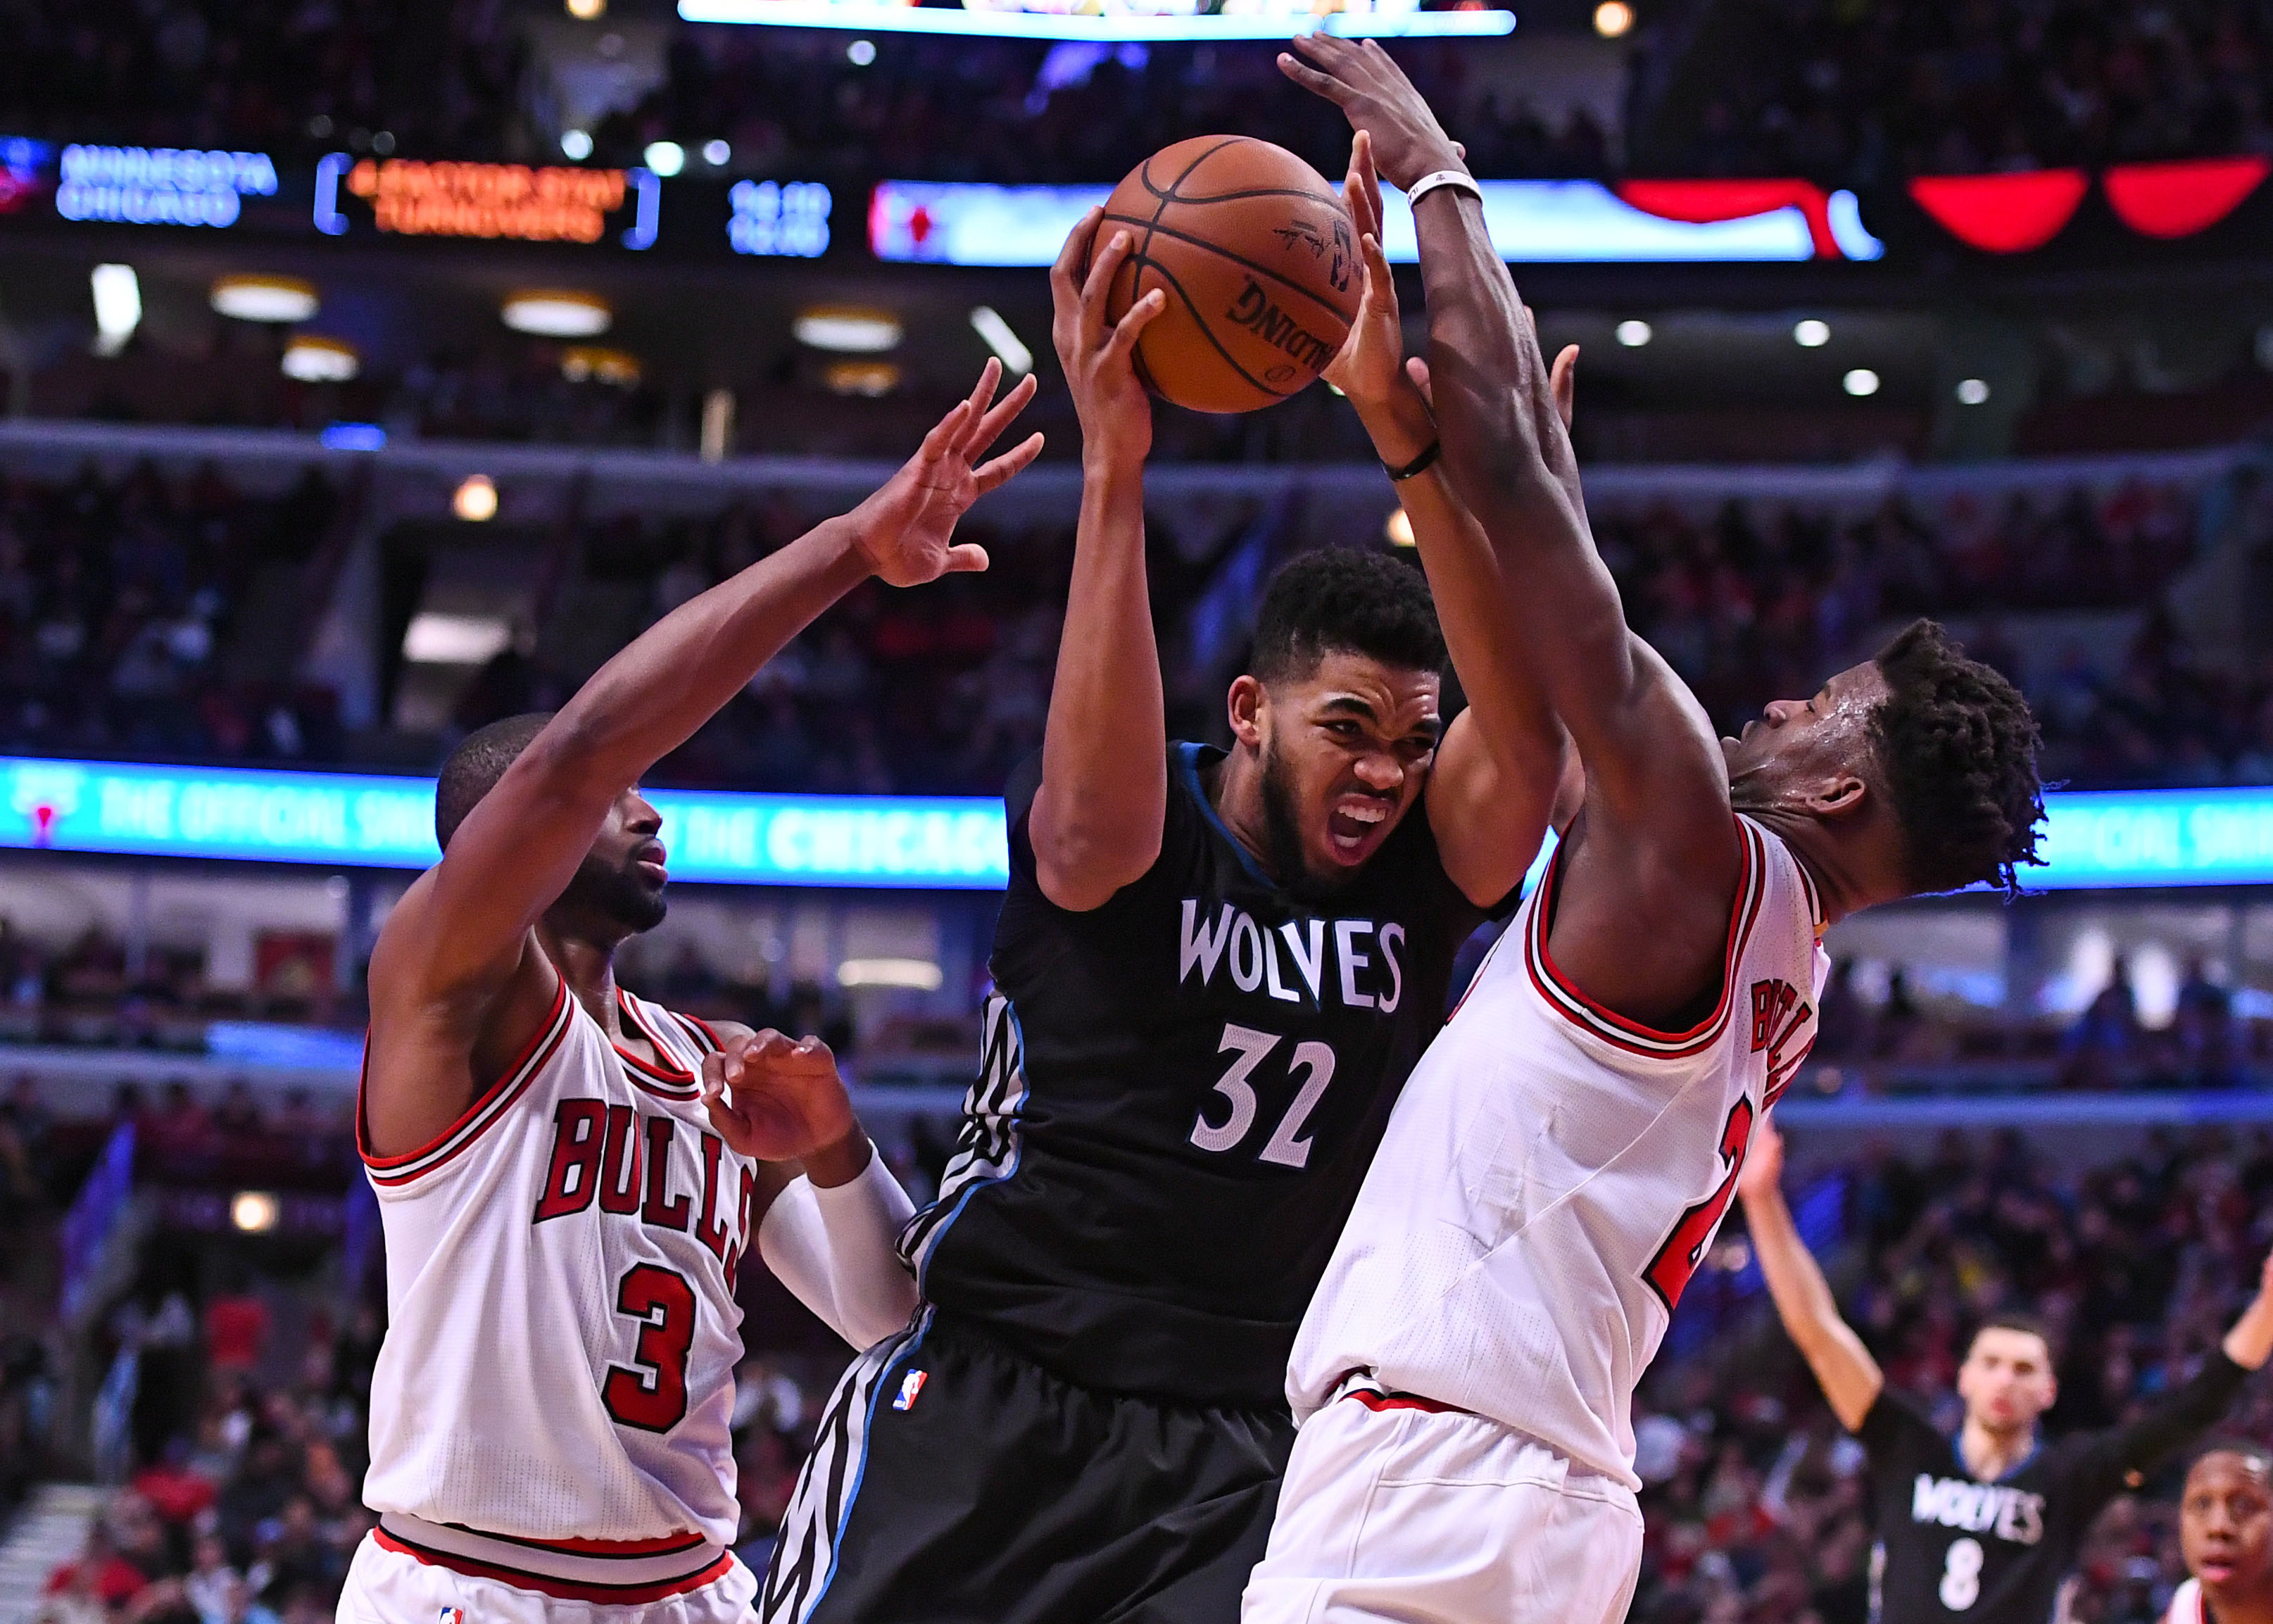 Tyus Jones says new teammate Jimmy Butler adds toughness to team